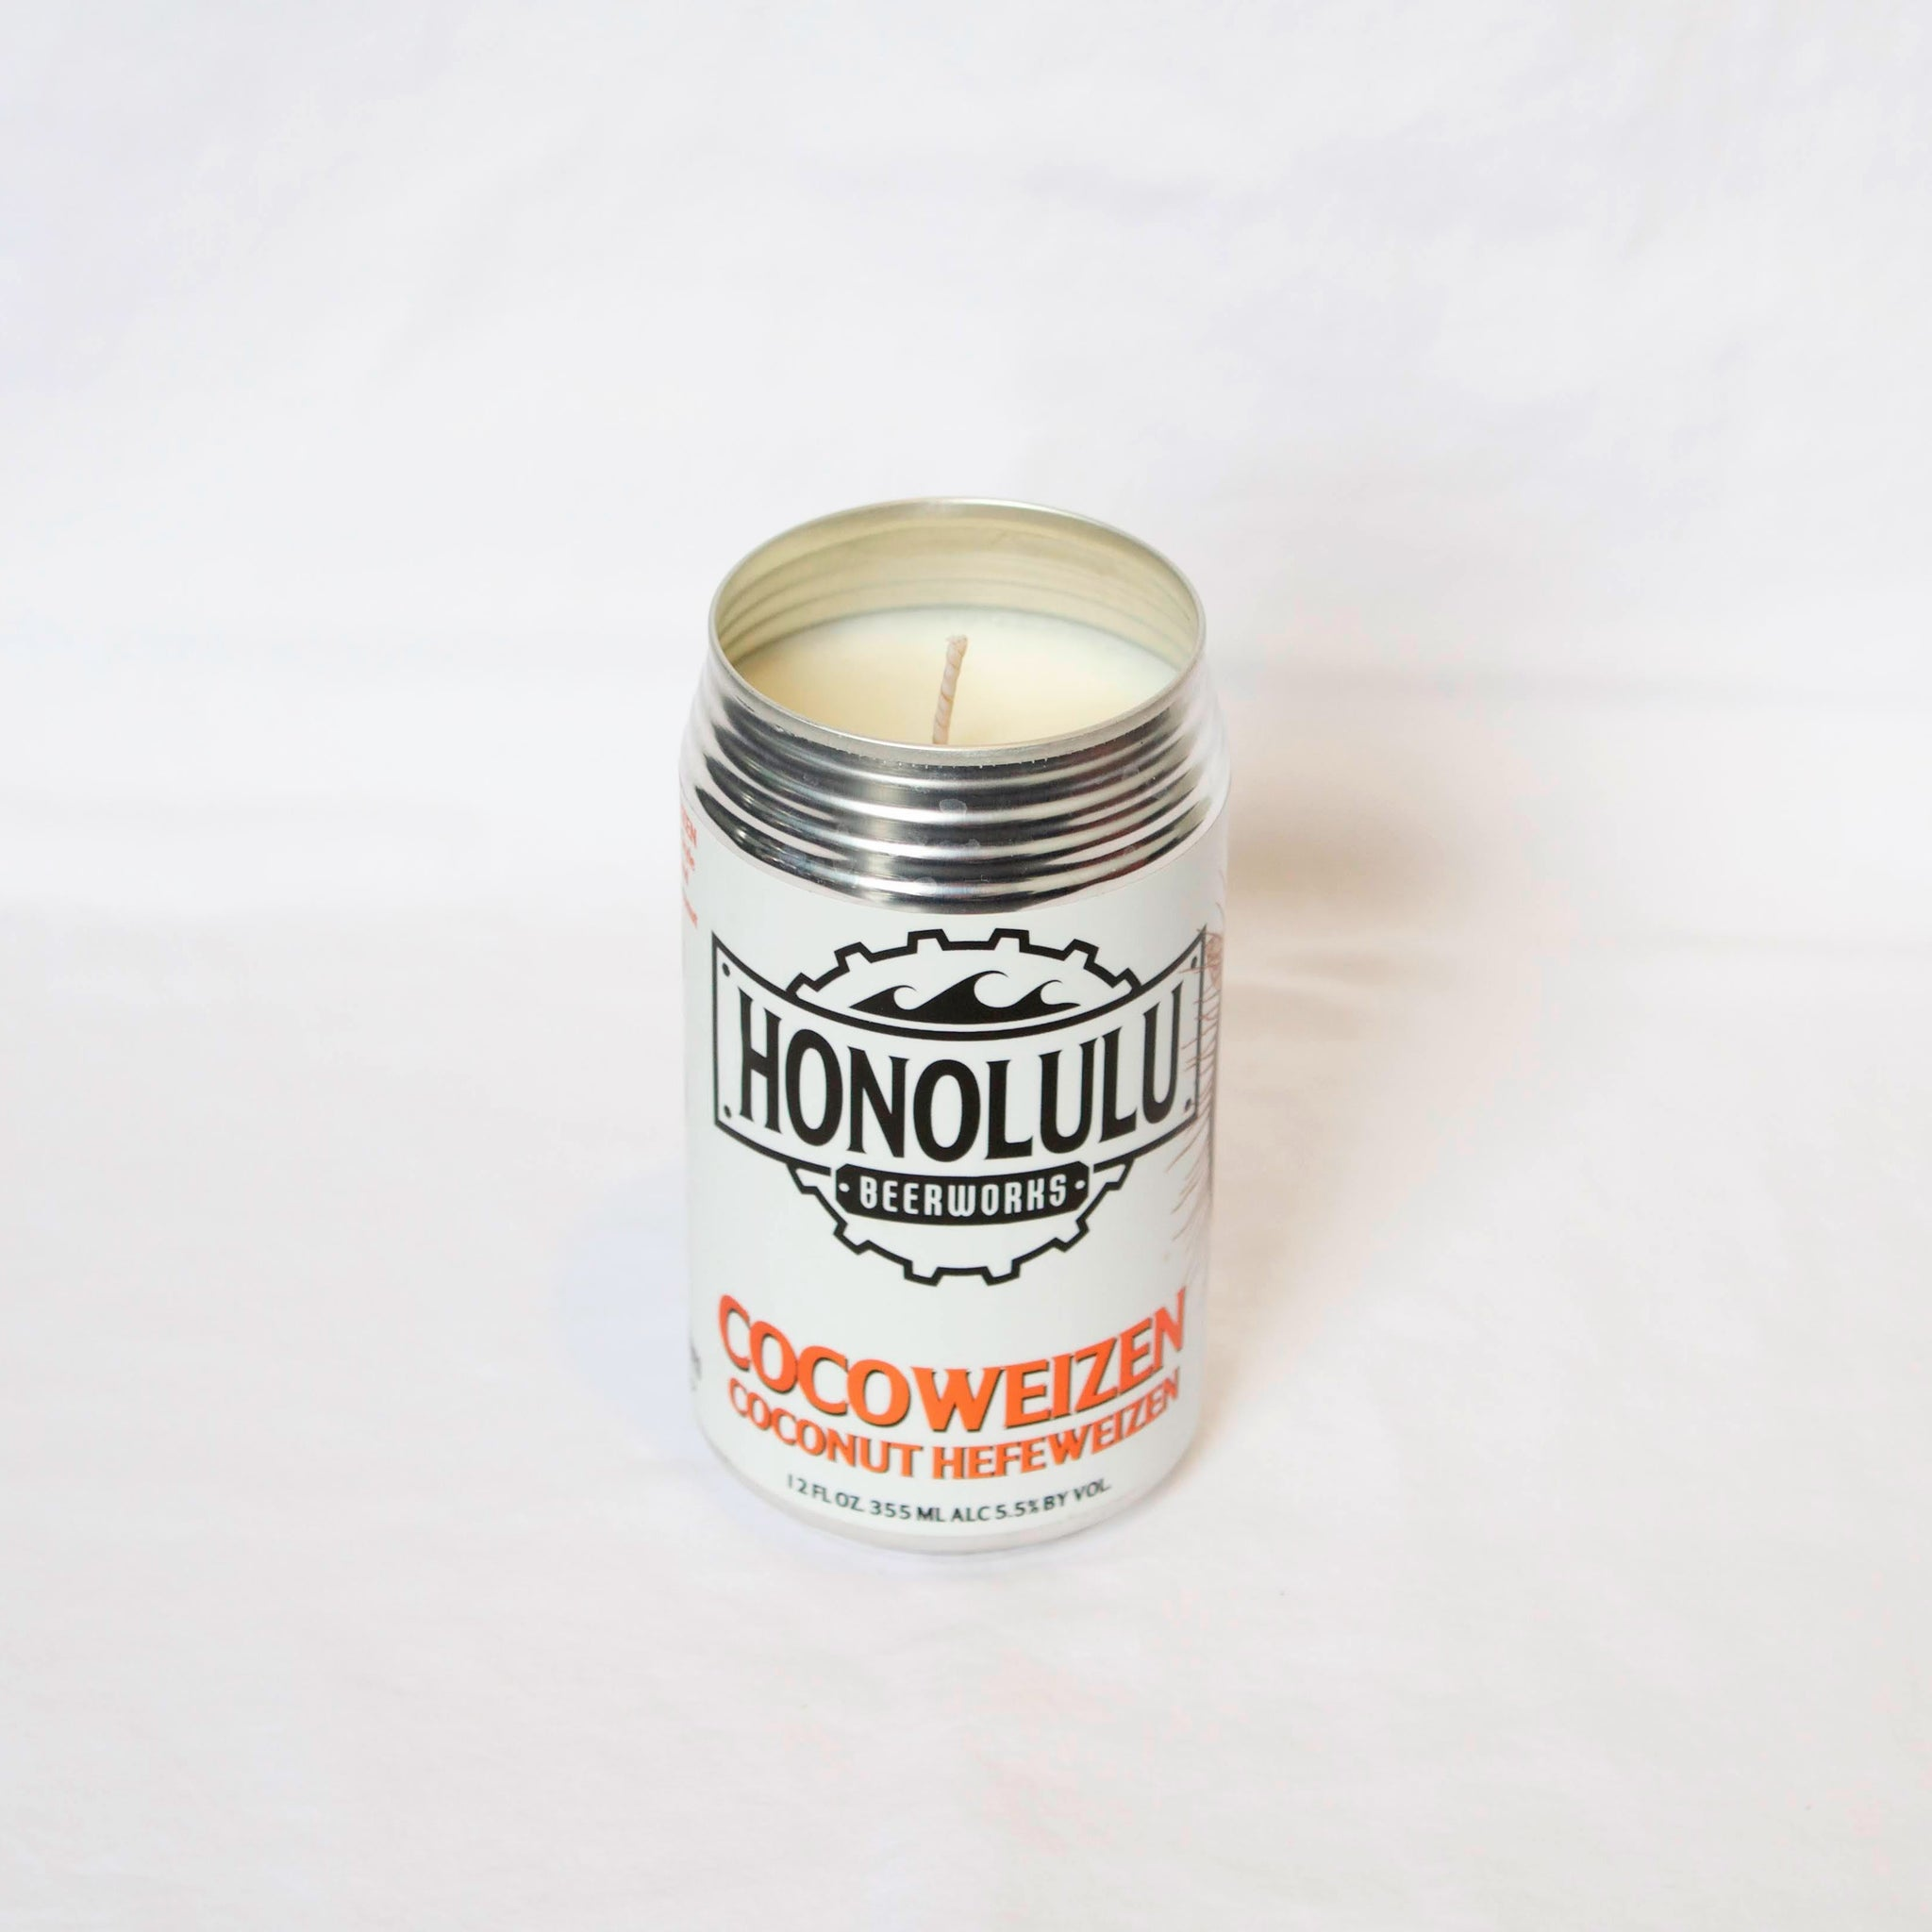 Honolulu Brewing Cocoweizen Candle